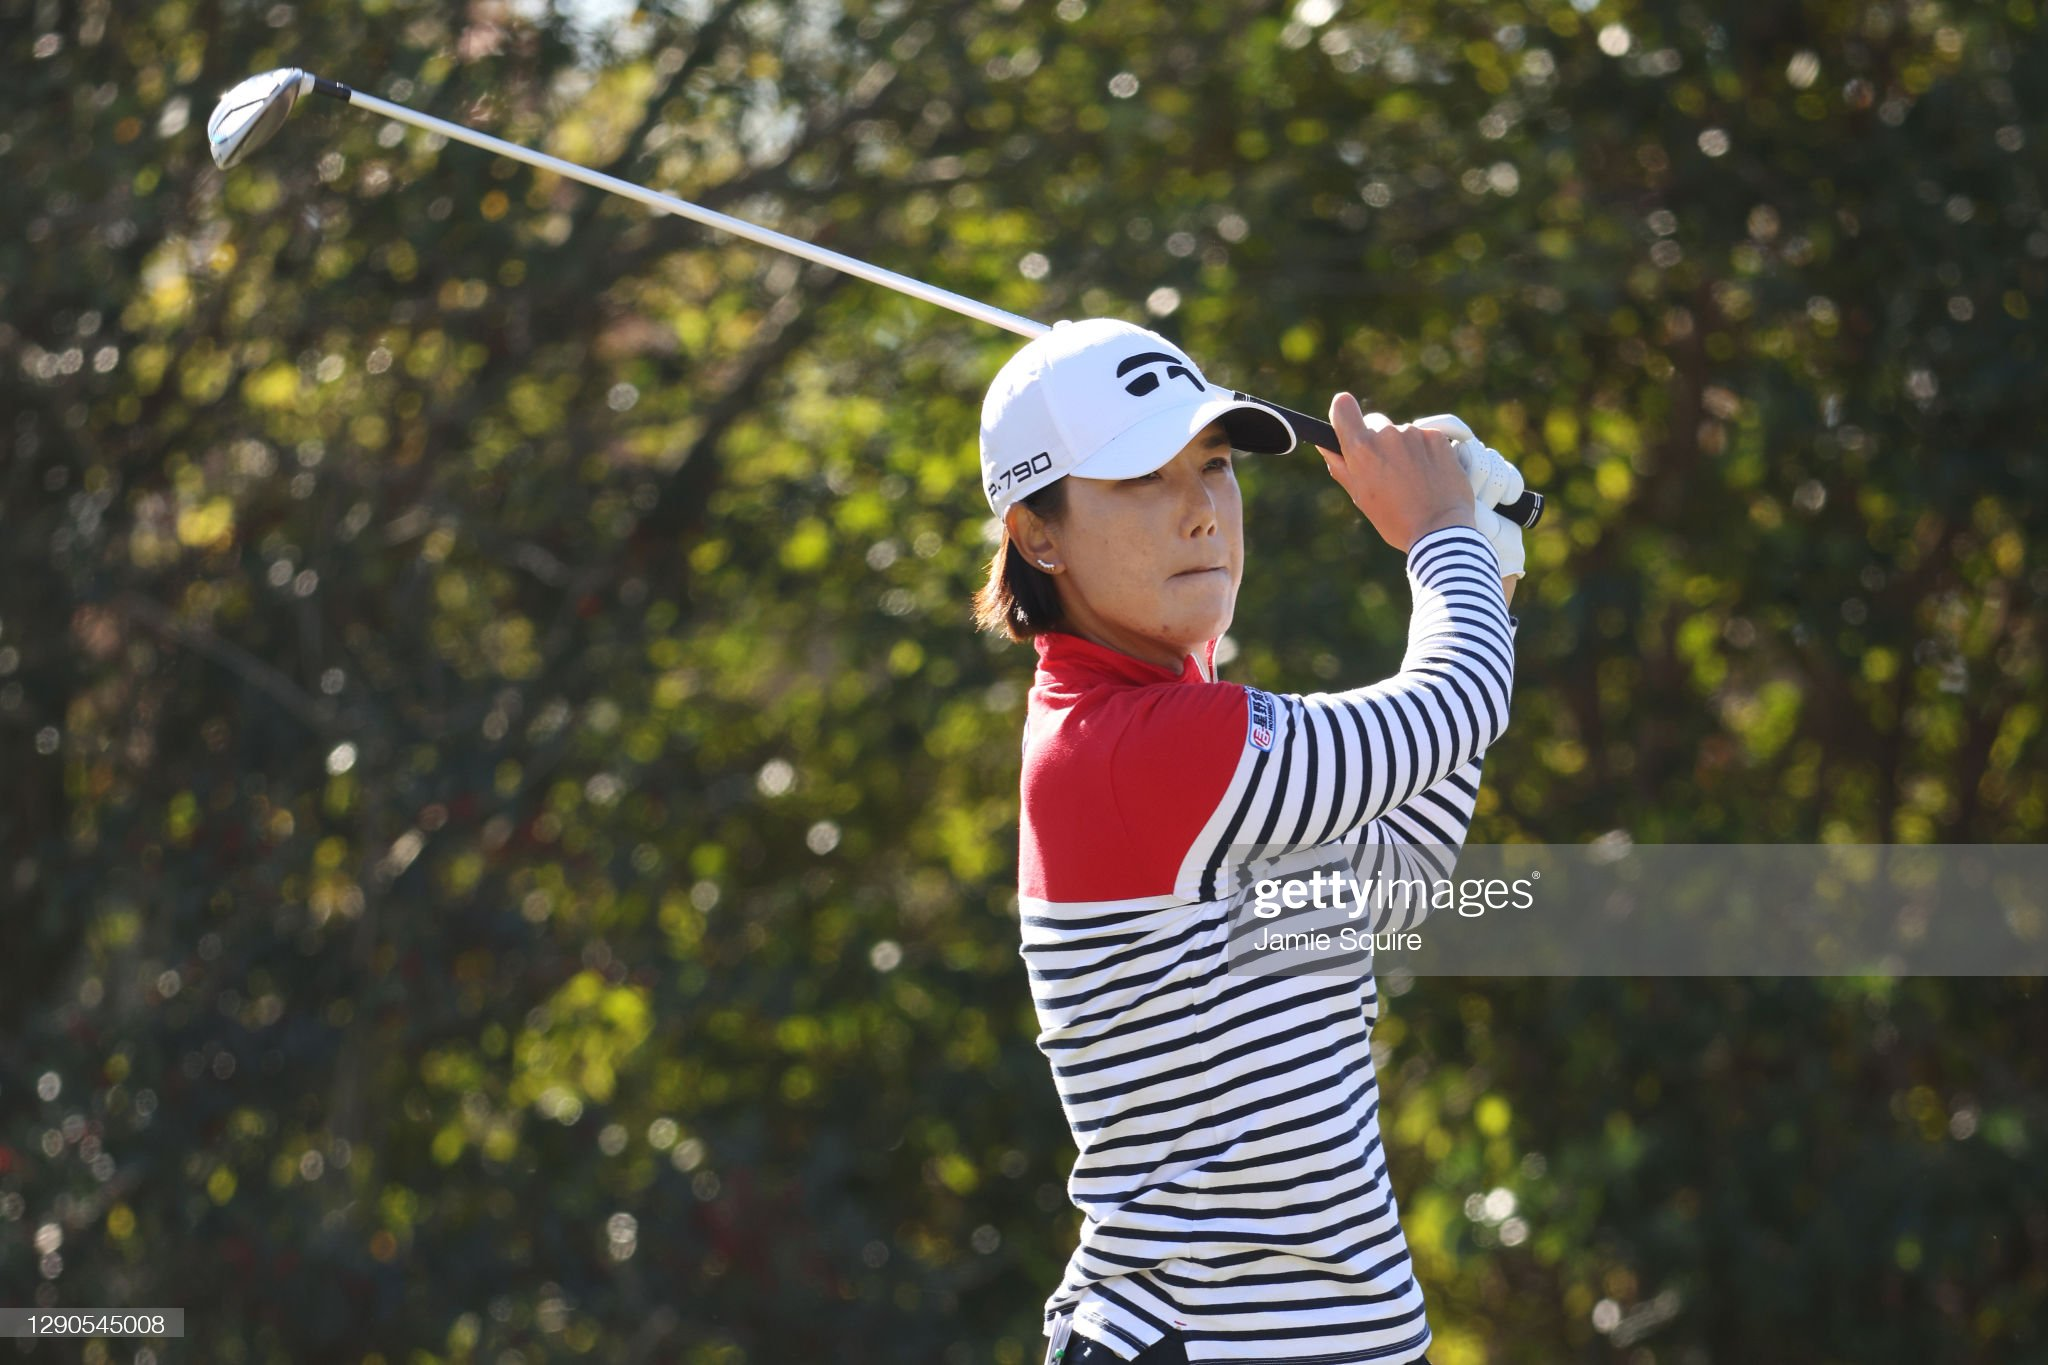 https://media.gettyimages.com/photos/mijeong-jeon-of-south-korea-plays-her-shot-from-the-12th-tee-during-picture-id1290545008?s=2048x2048